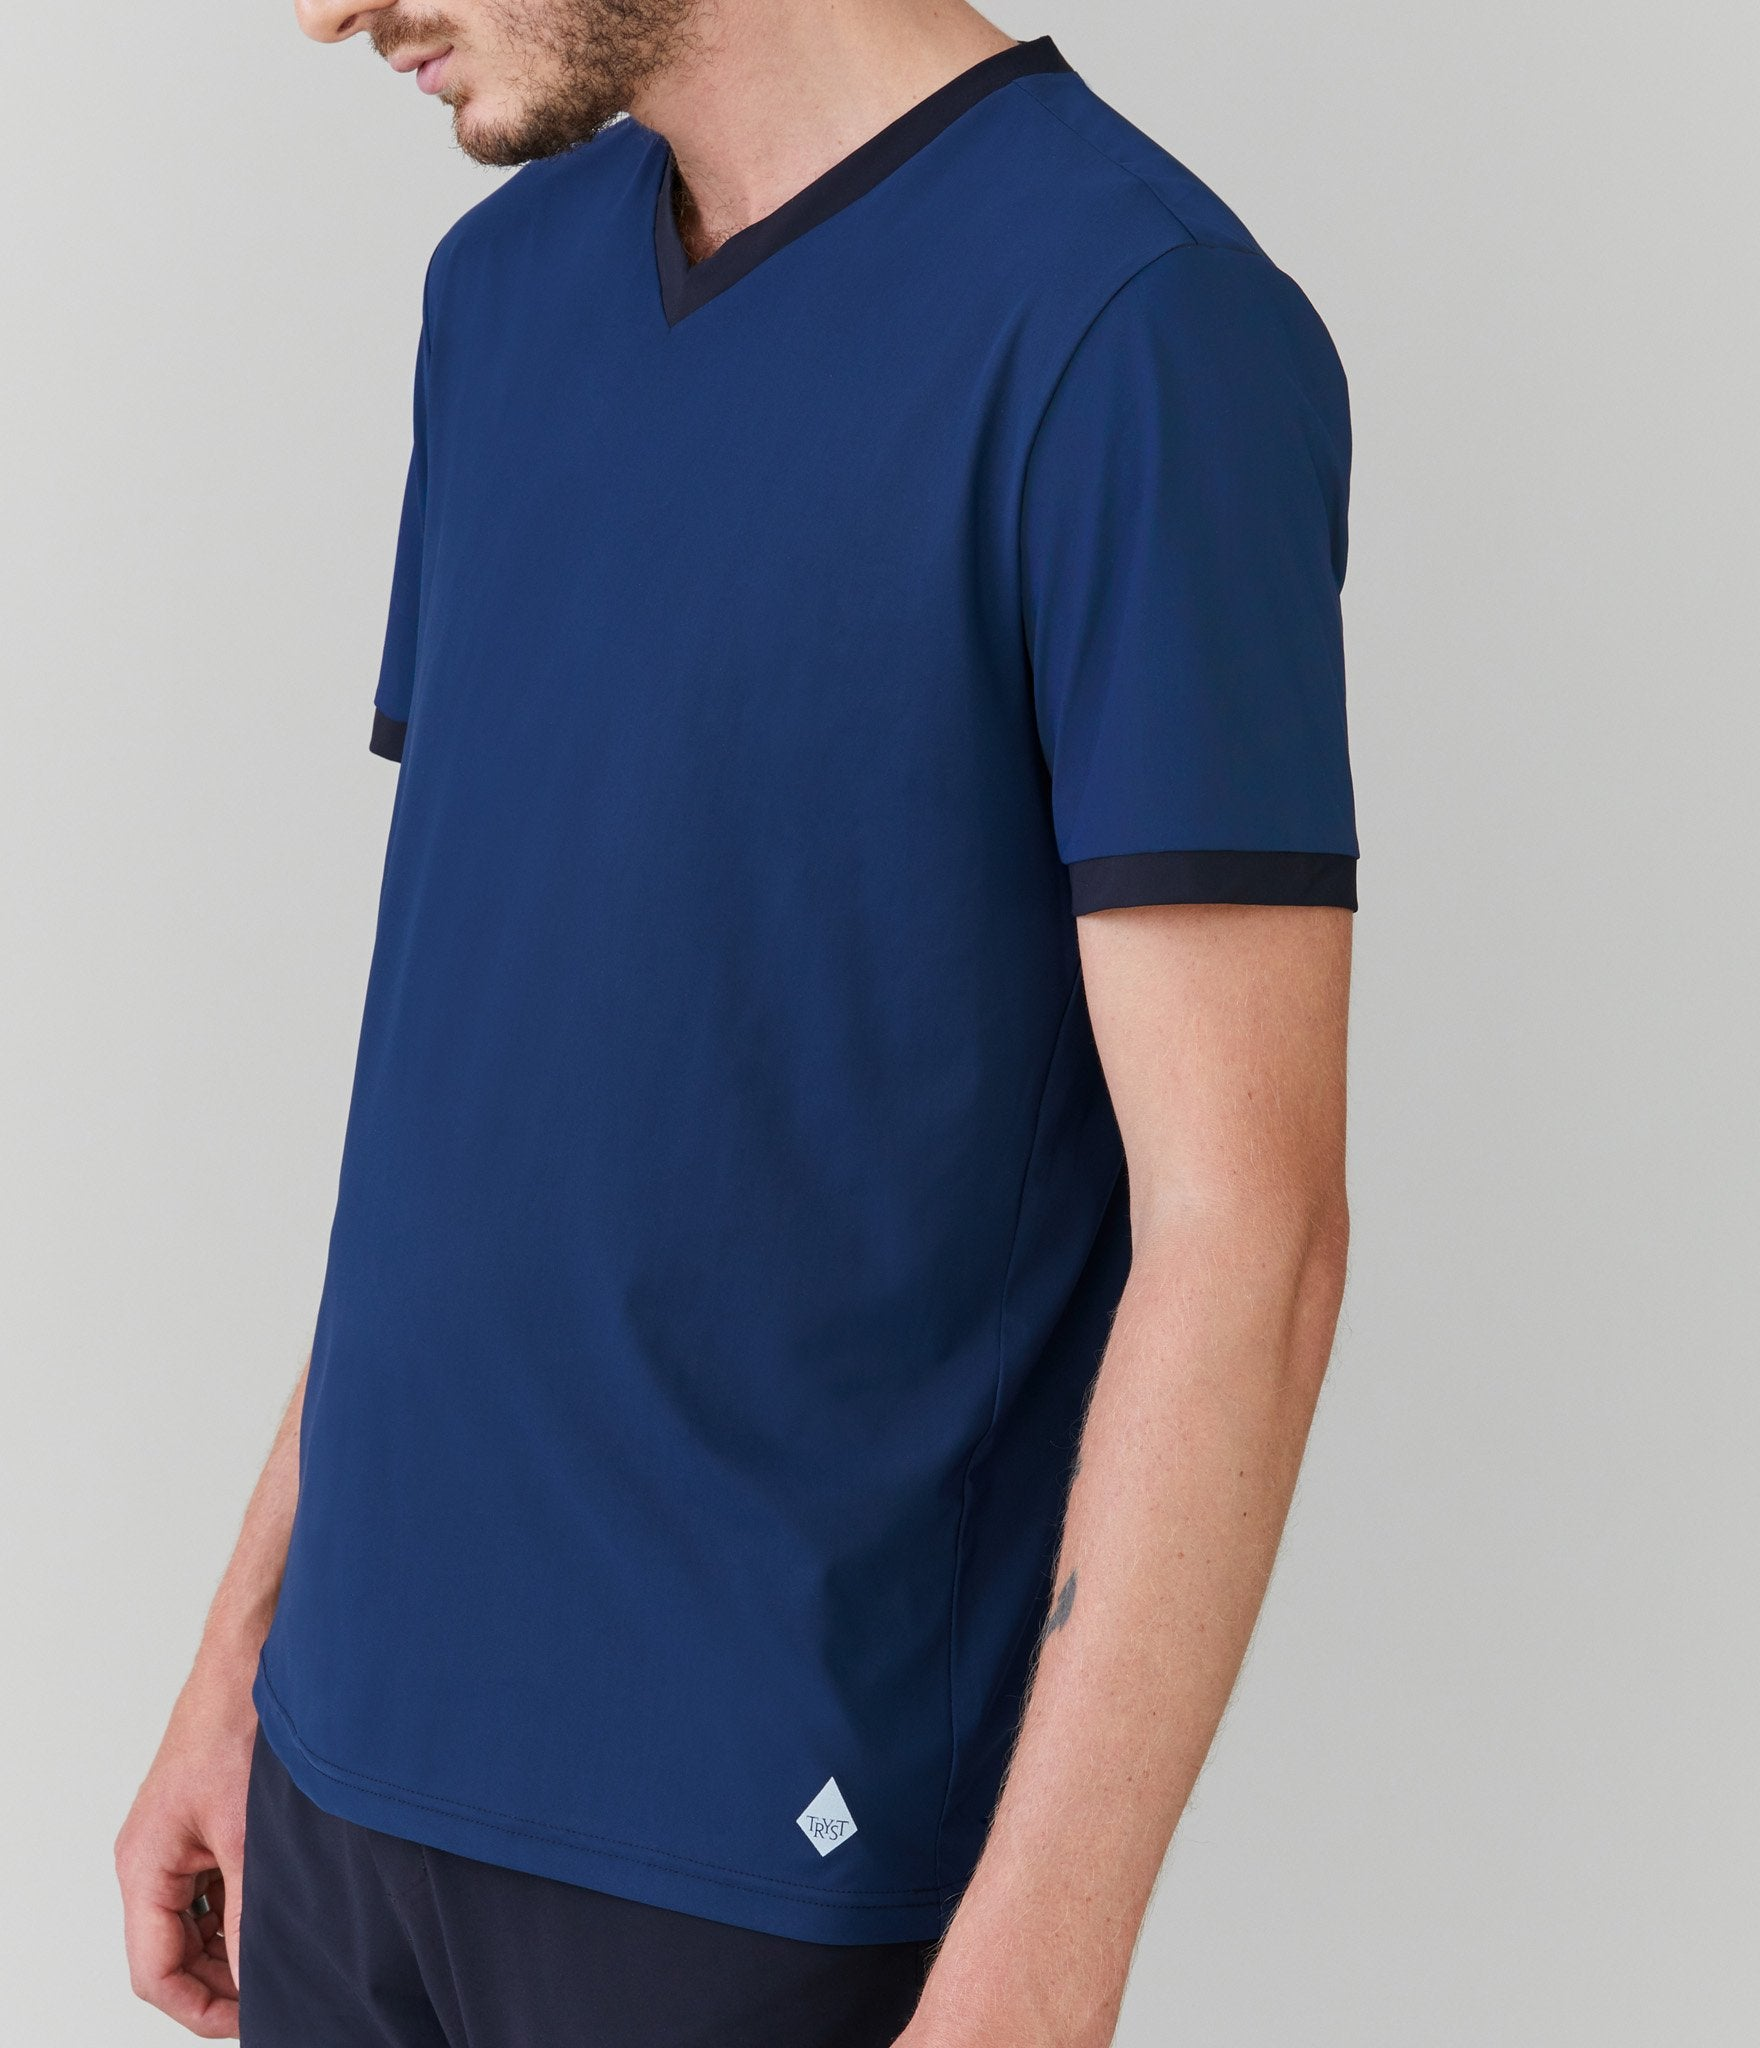 Monaco t-shirt</br>Dark navy/black